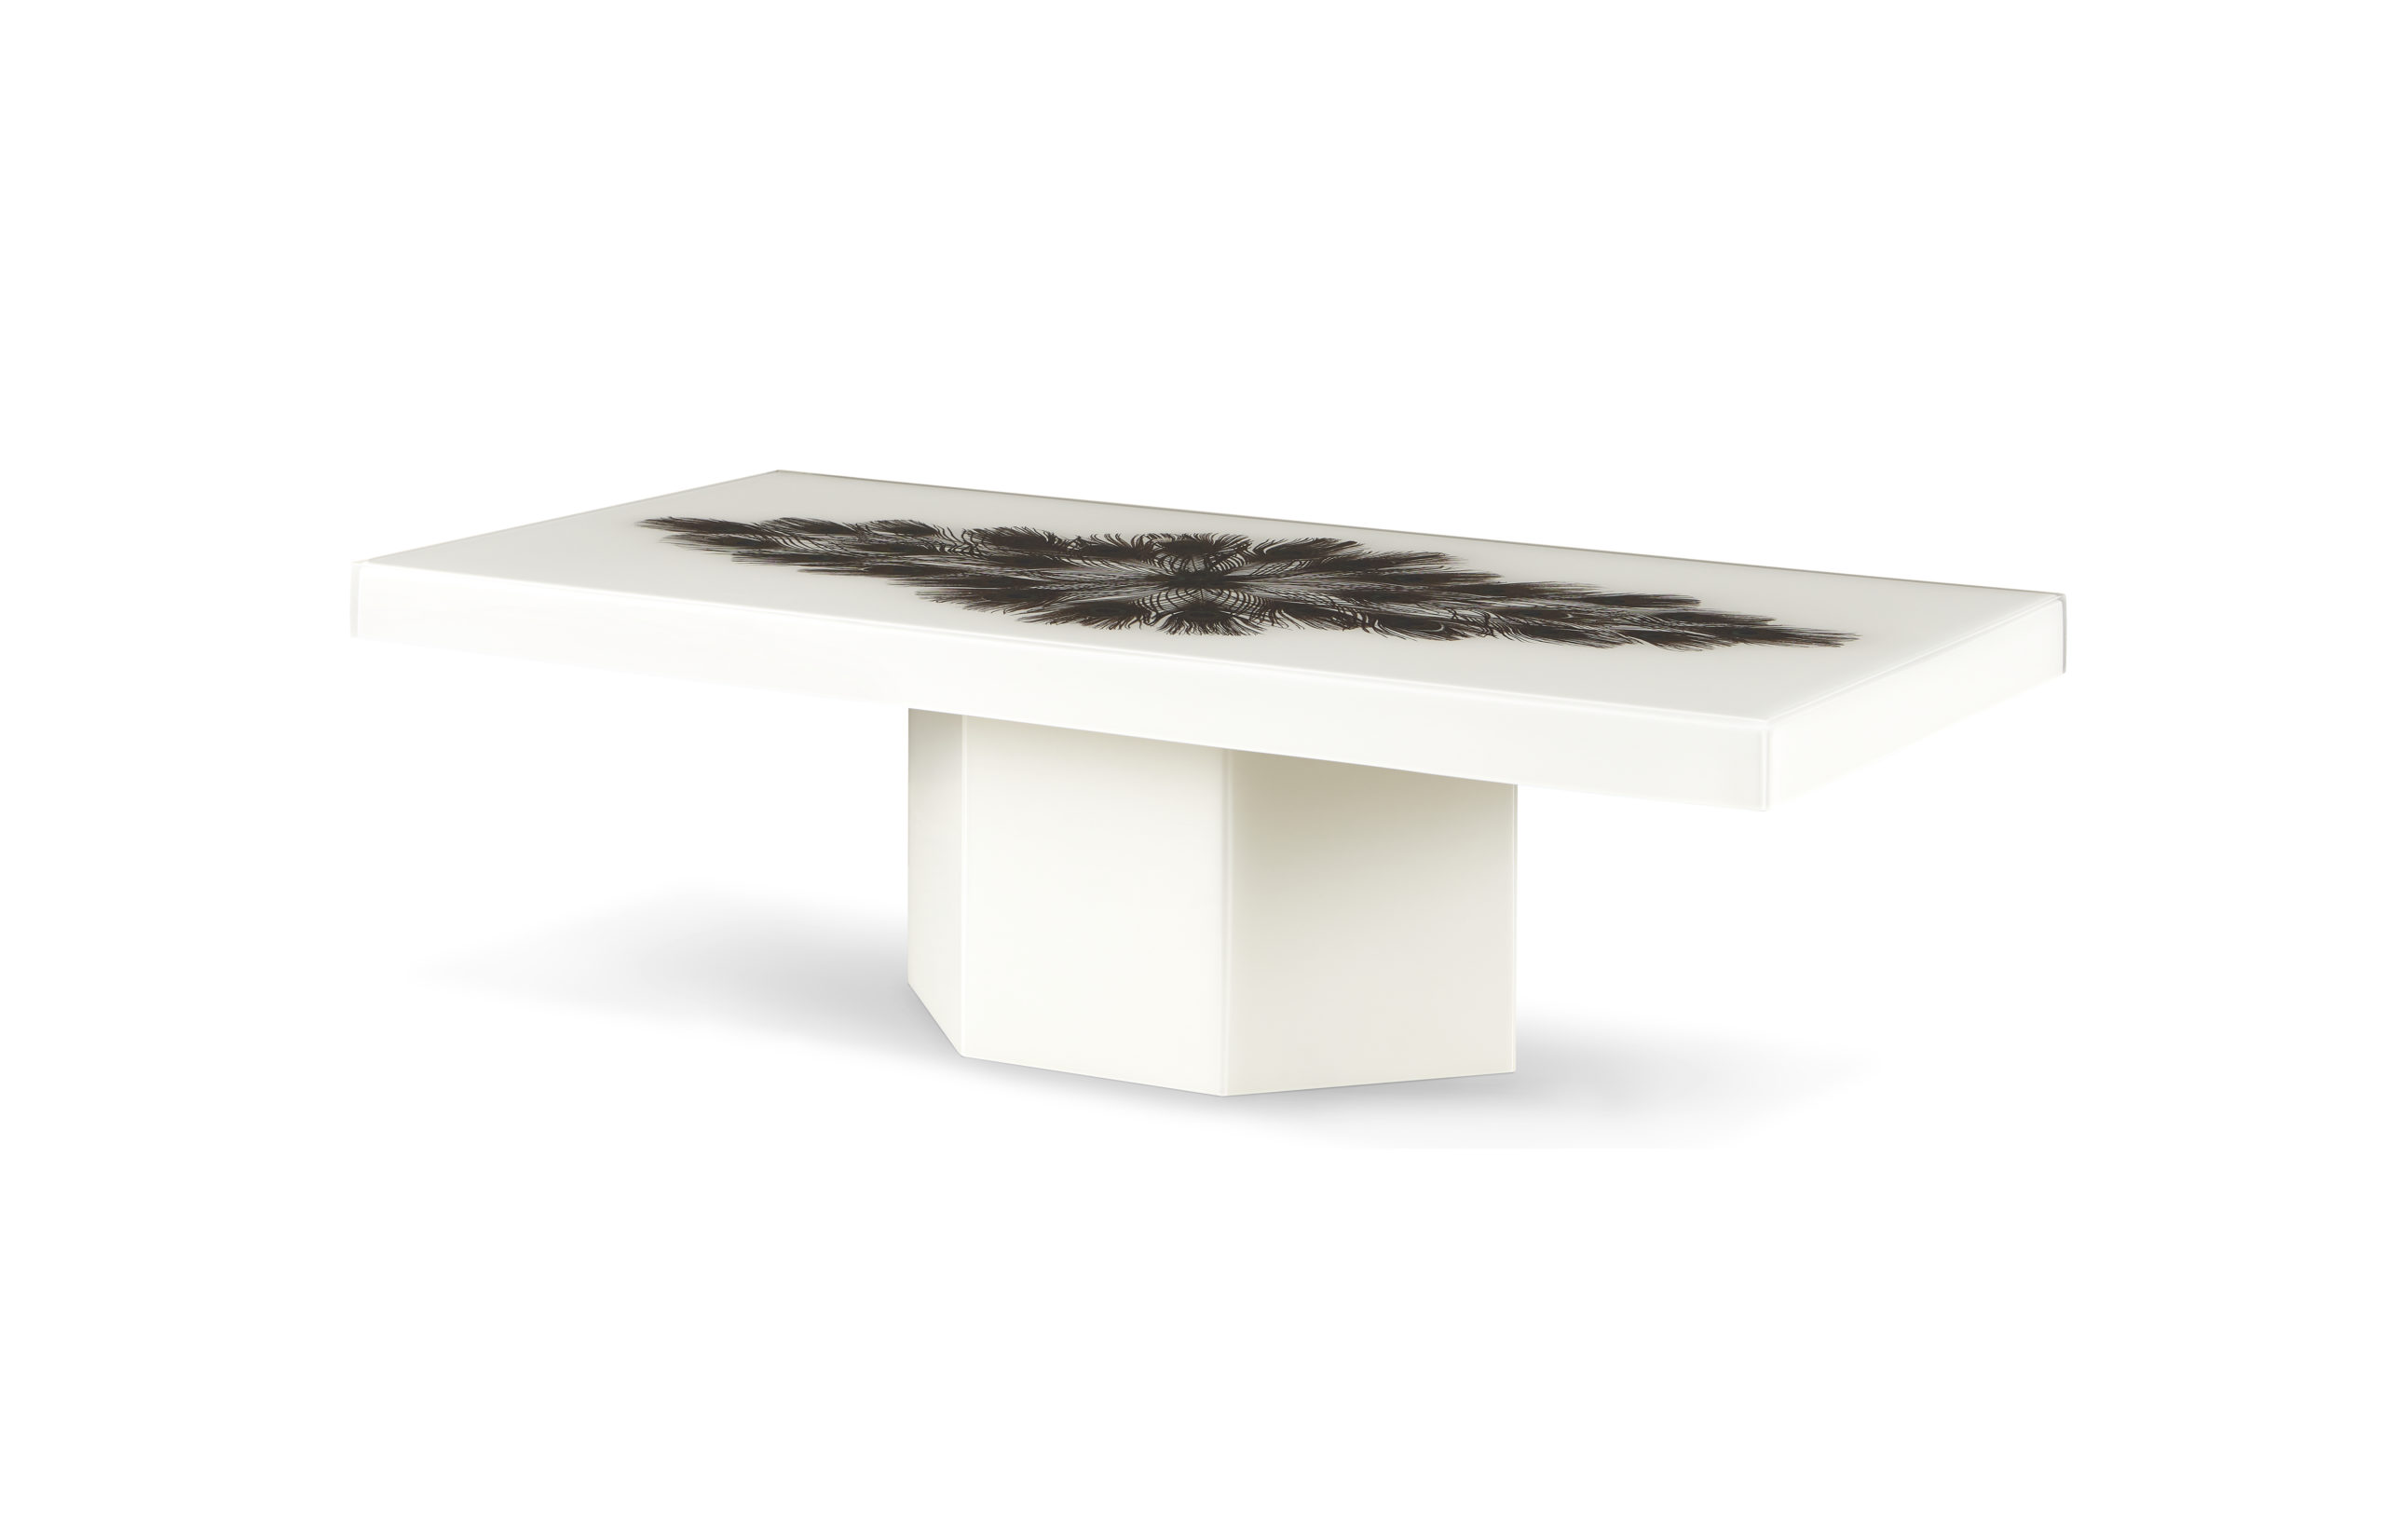 Baker_products_WNWN_peacock_rectangle_cocktail_table_BAA3256_FRONT_3QRT_resize-1-scaled-2